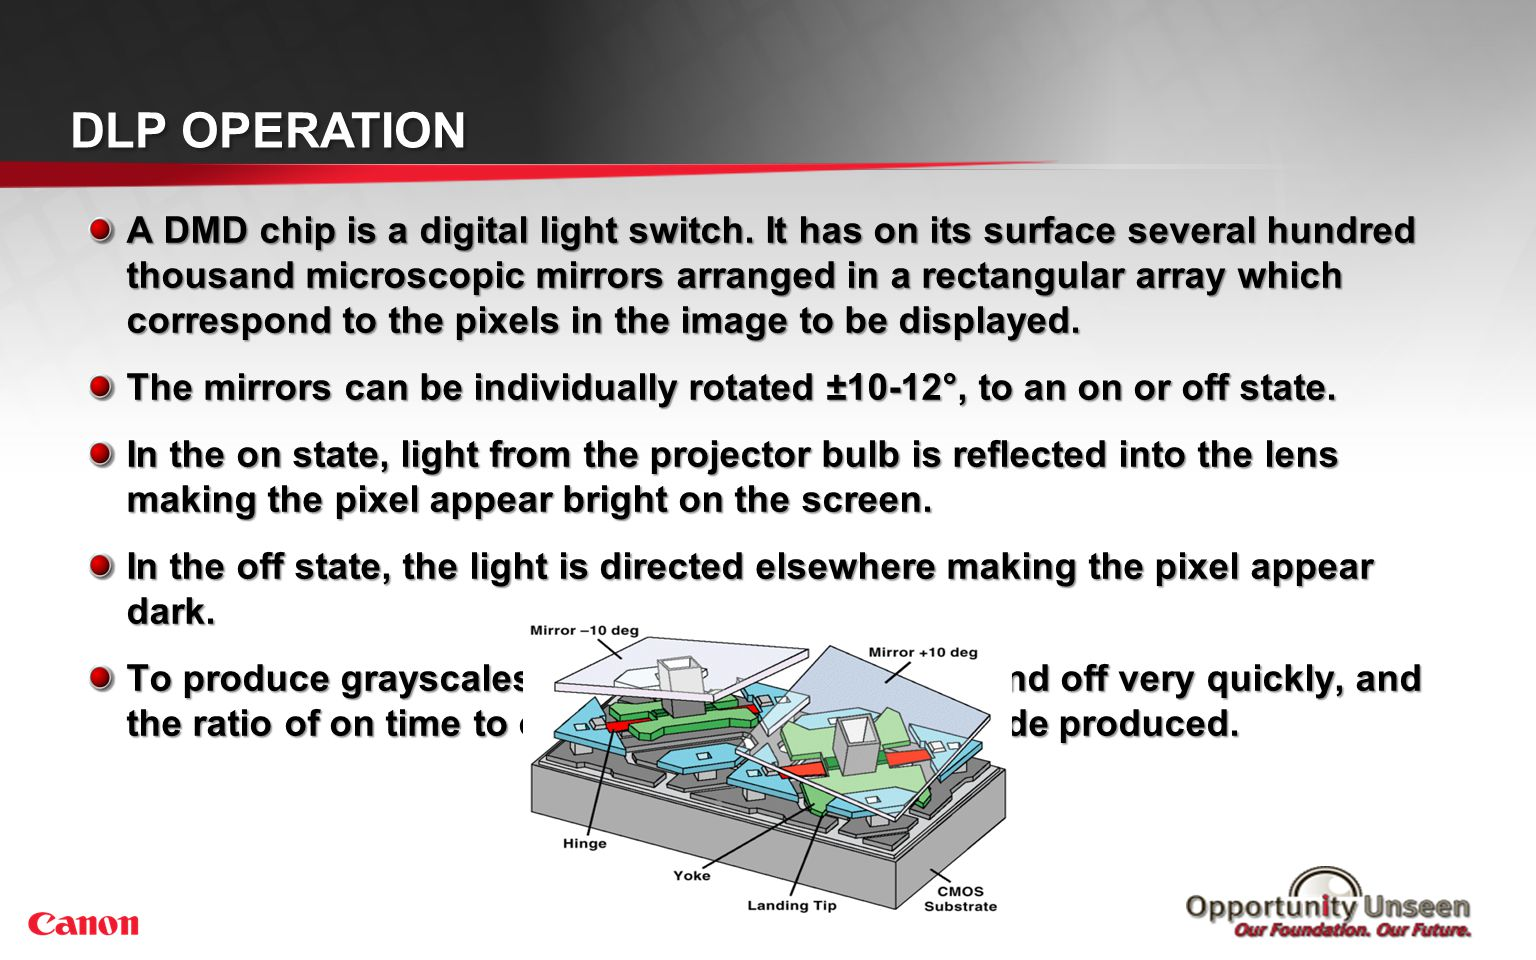 DLP OPERATION A DMD chip is a digital light switch. It has on its surface several hundred thousand microscopic mirrors arranged in a rectangular array